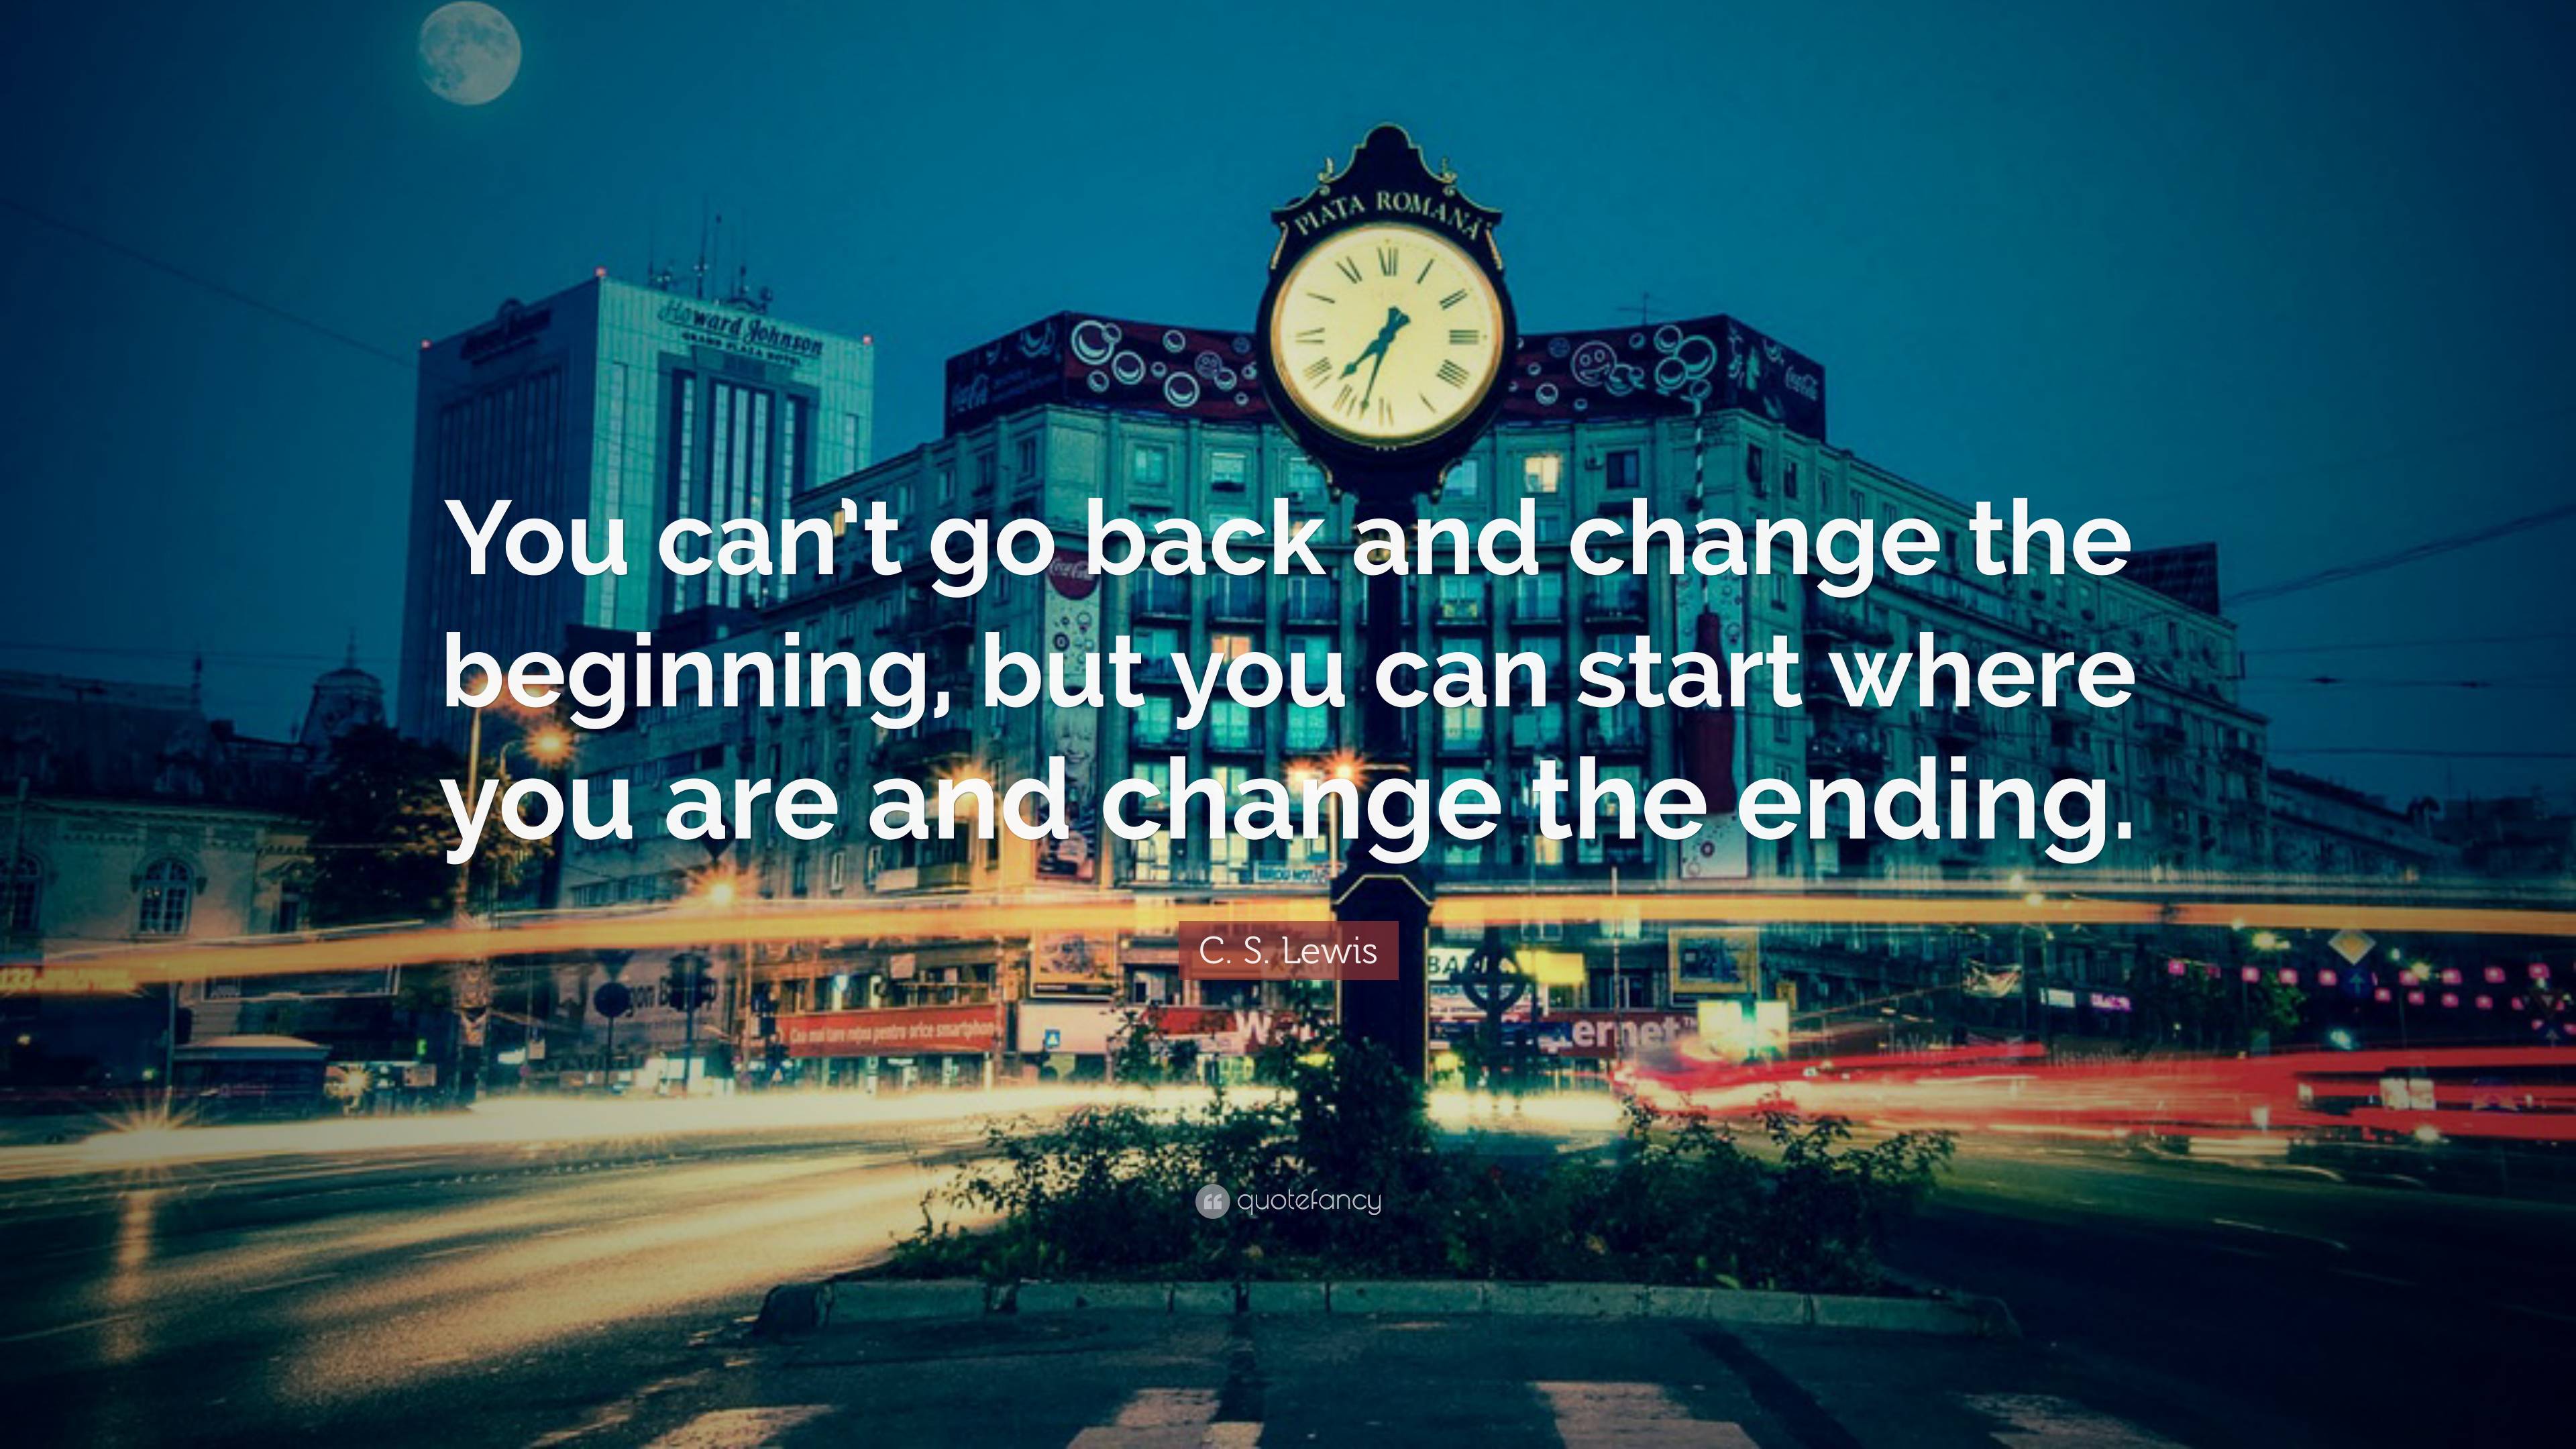 Wasting Time Quotes Wallpaper C S Lewis Quote You Can T Go Back And Change The